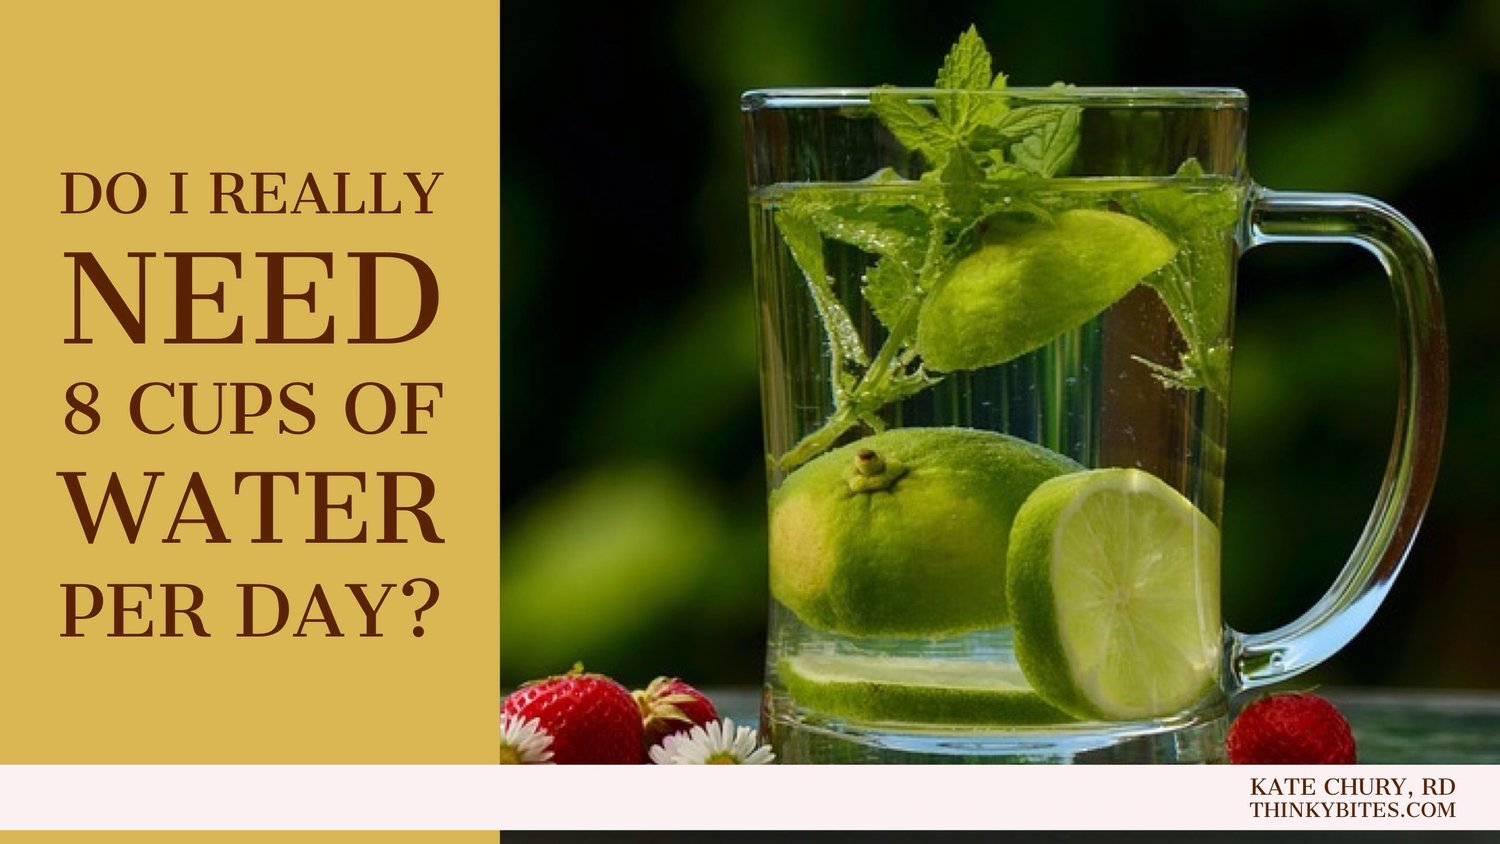 Do I Really Need 8 Cups of Water Per Day?